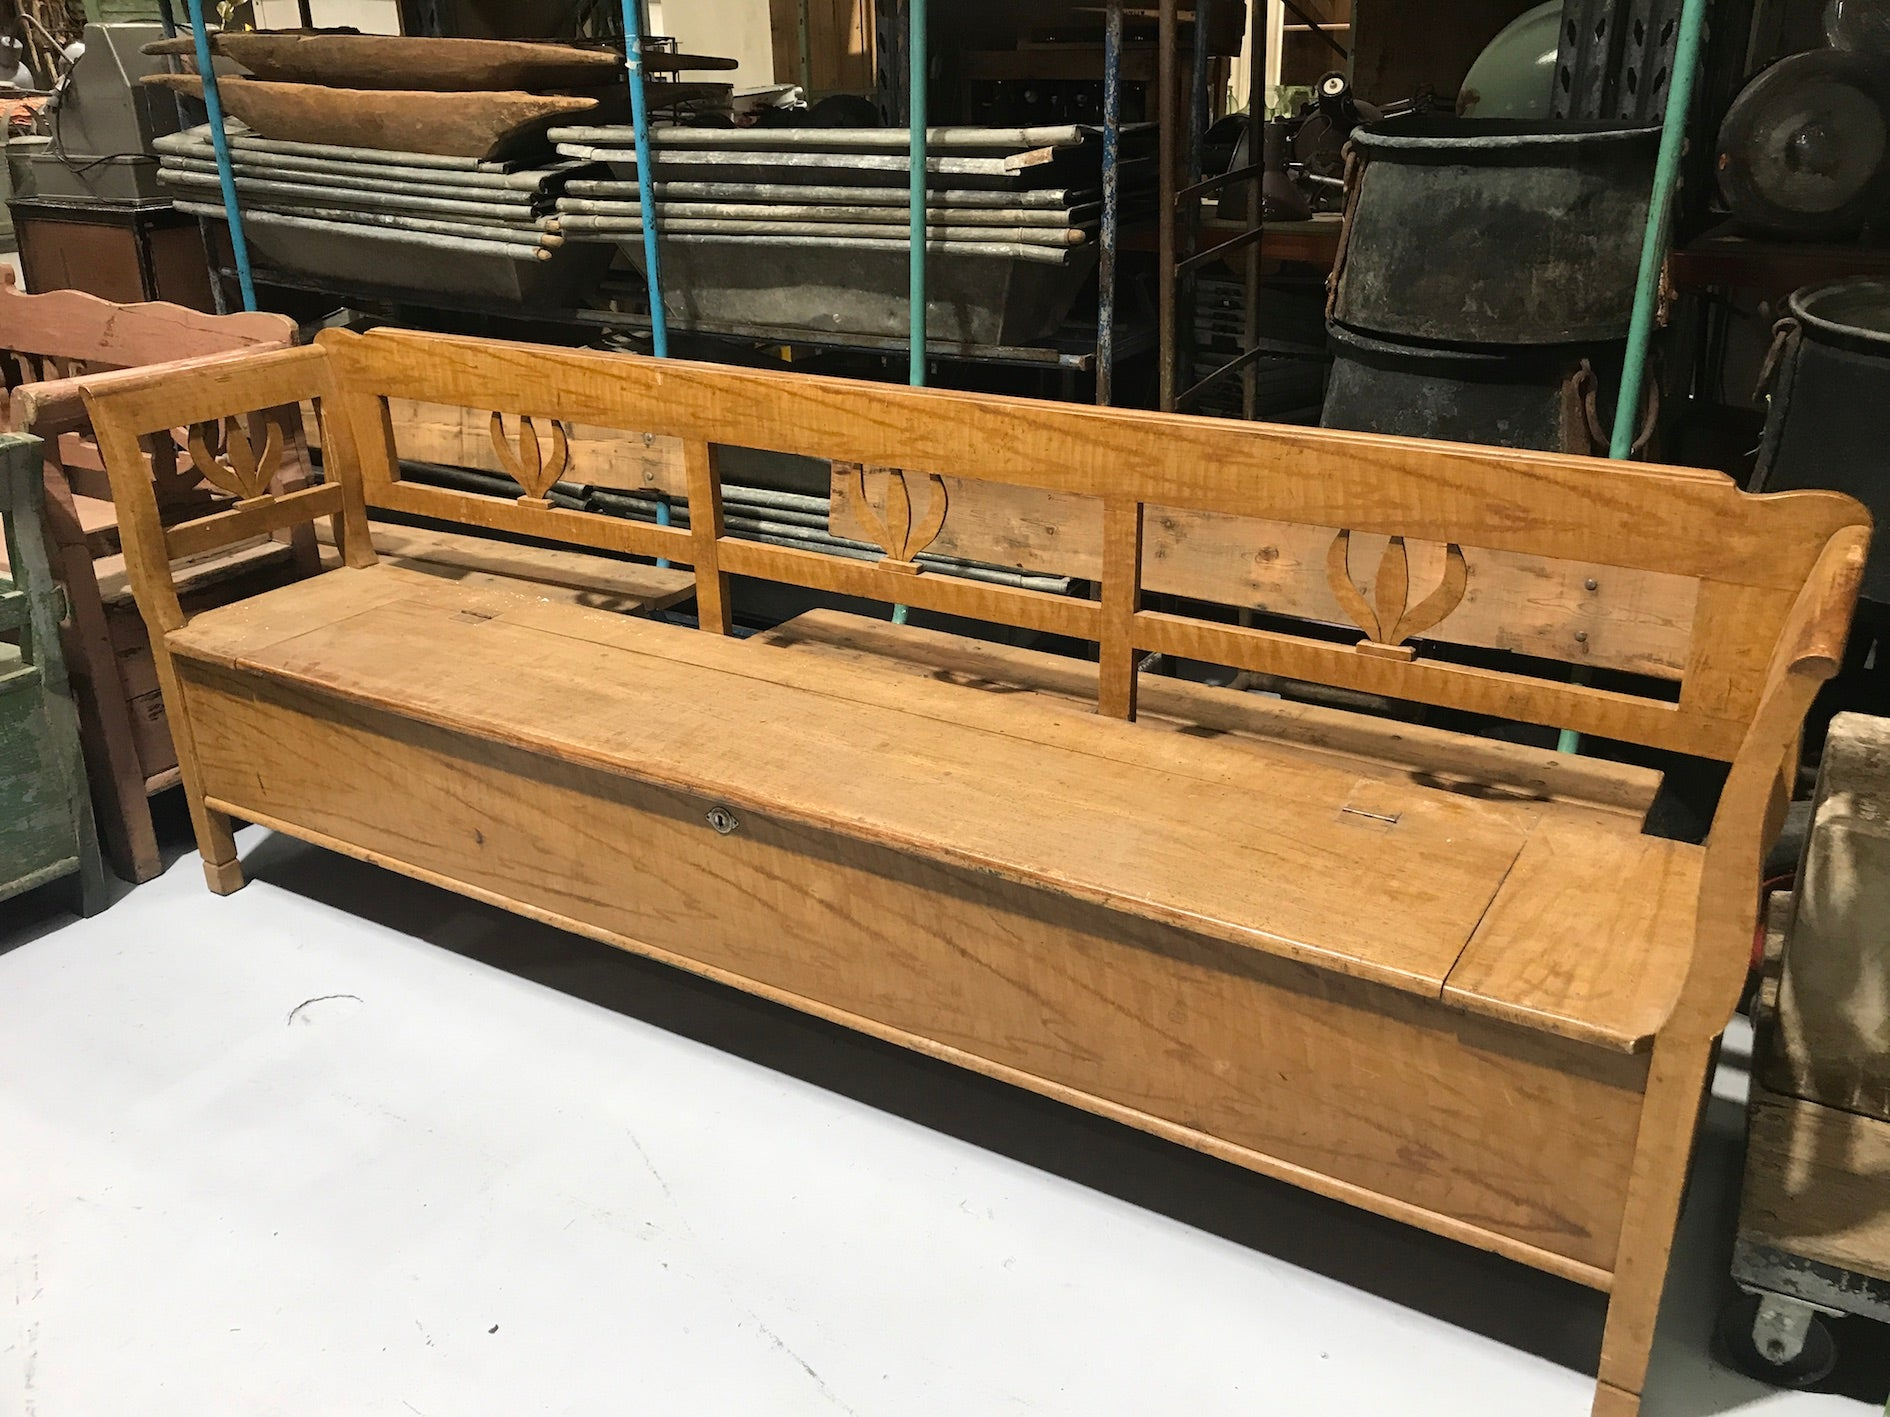 Vintage European wooden kitchen box bench seat 2.4 mt #2257